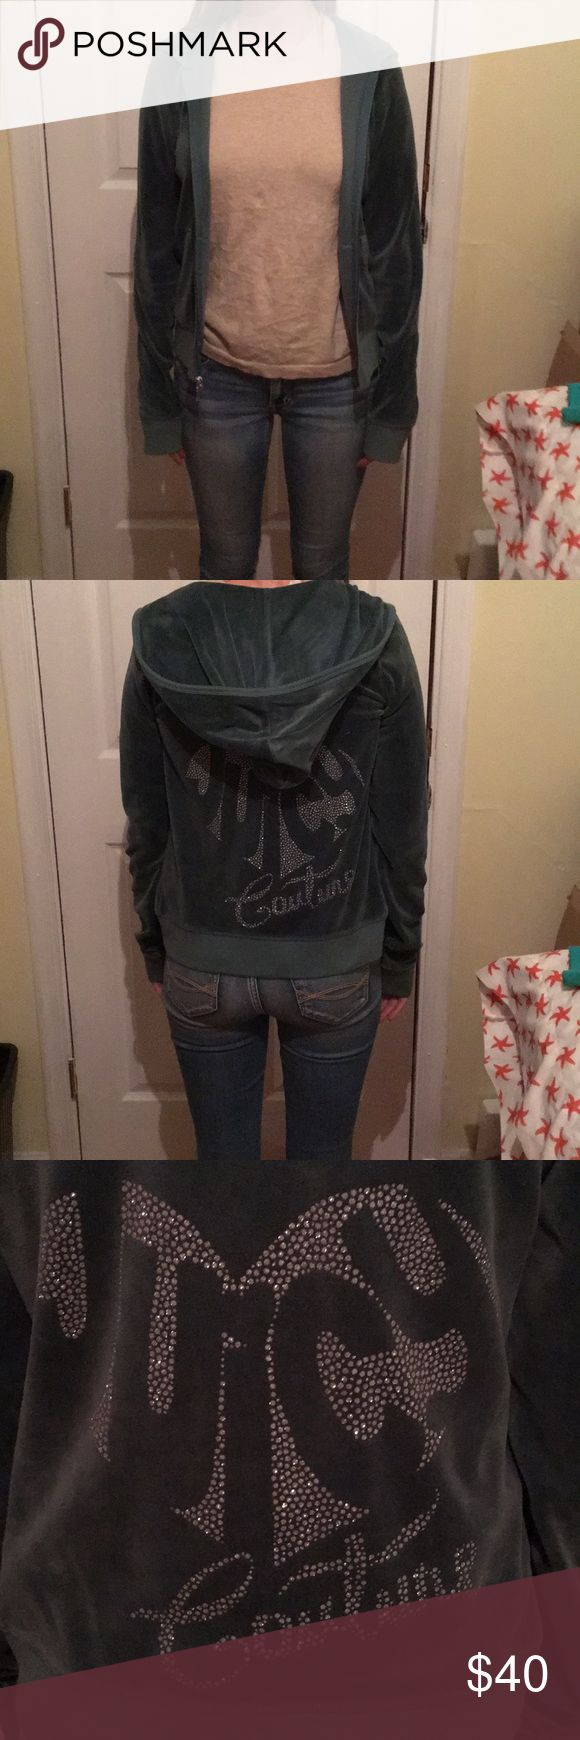 1 hour sale juicy couture jacket juicy couture dark green jacket with rhinestone back Juicy Couture Jackets & Coats